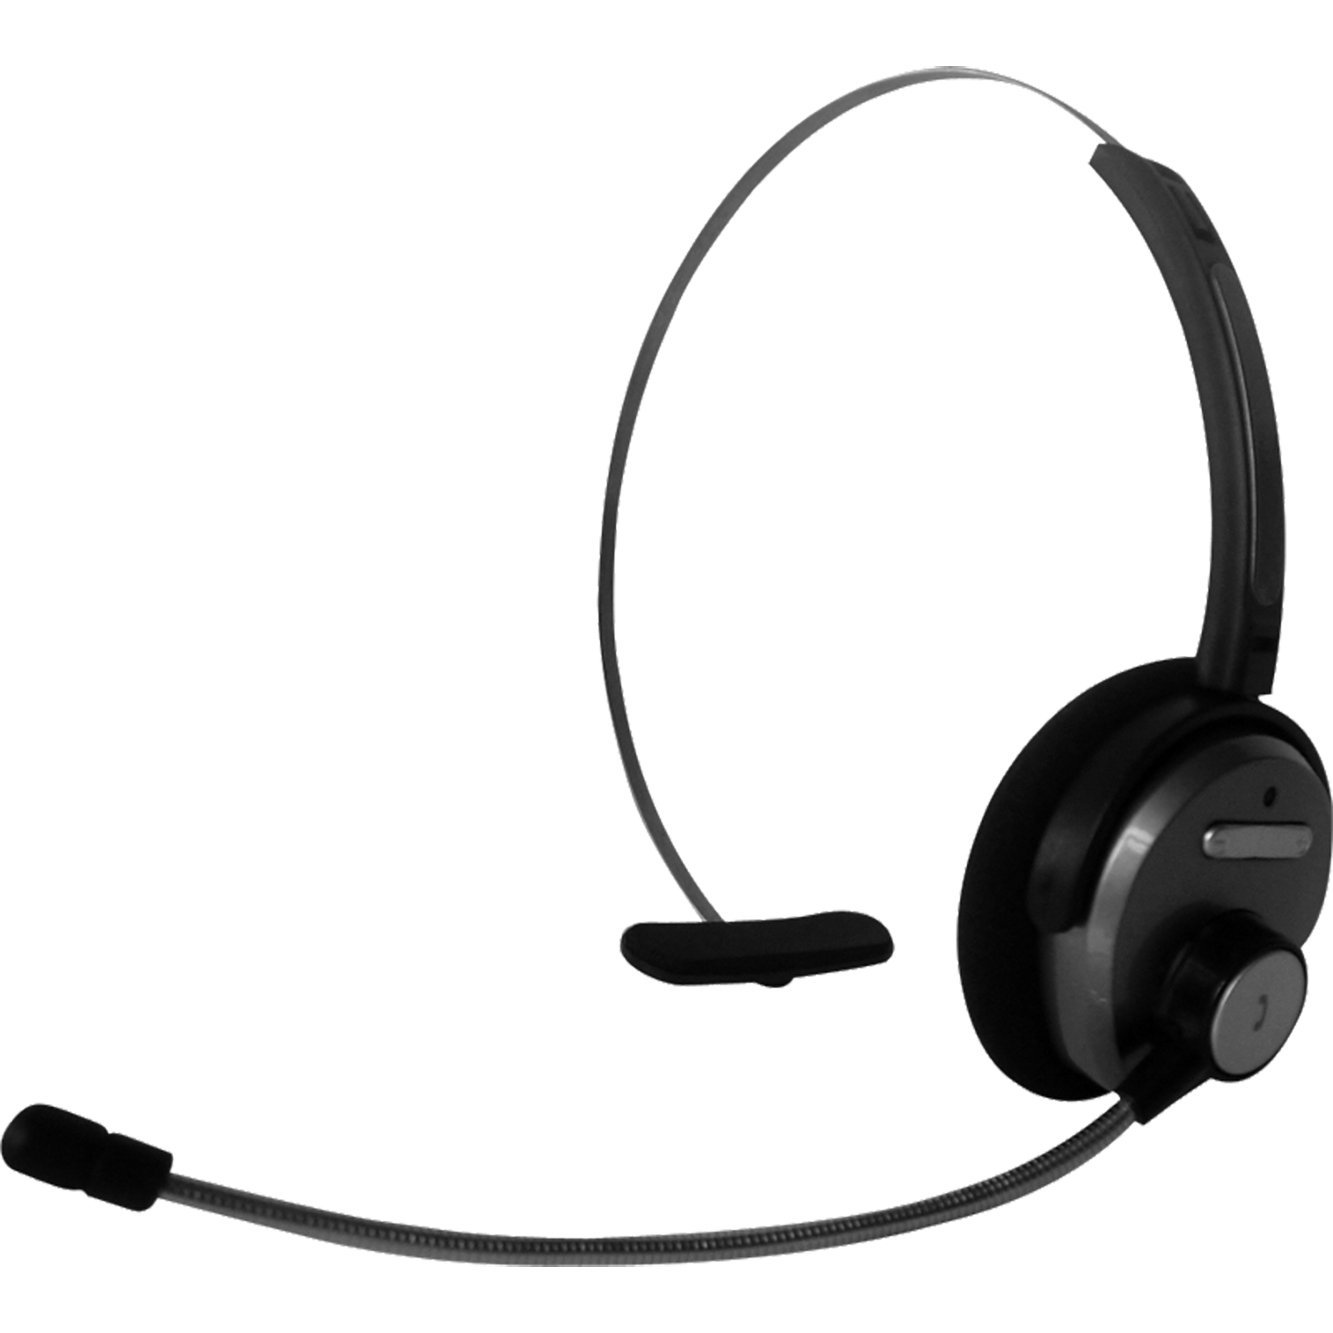 VIBE Over the Head Noise Canceling Ultra-Slim Bluetooth Wireless Headset for iPhone 5s, Samsung Galaxy S5, Note 3, HTC One, Nexus 5, Moto X, Motorola Droid, LG G2 Pro Gaming PSP, Laptop and Desktop Computers, Tablets, and Others